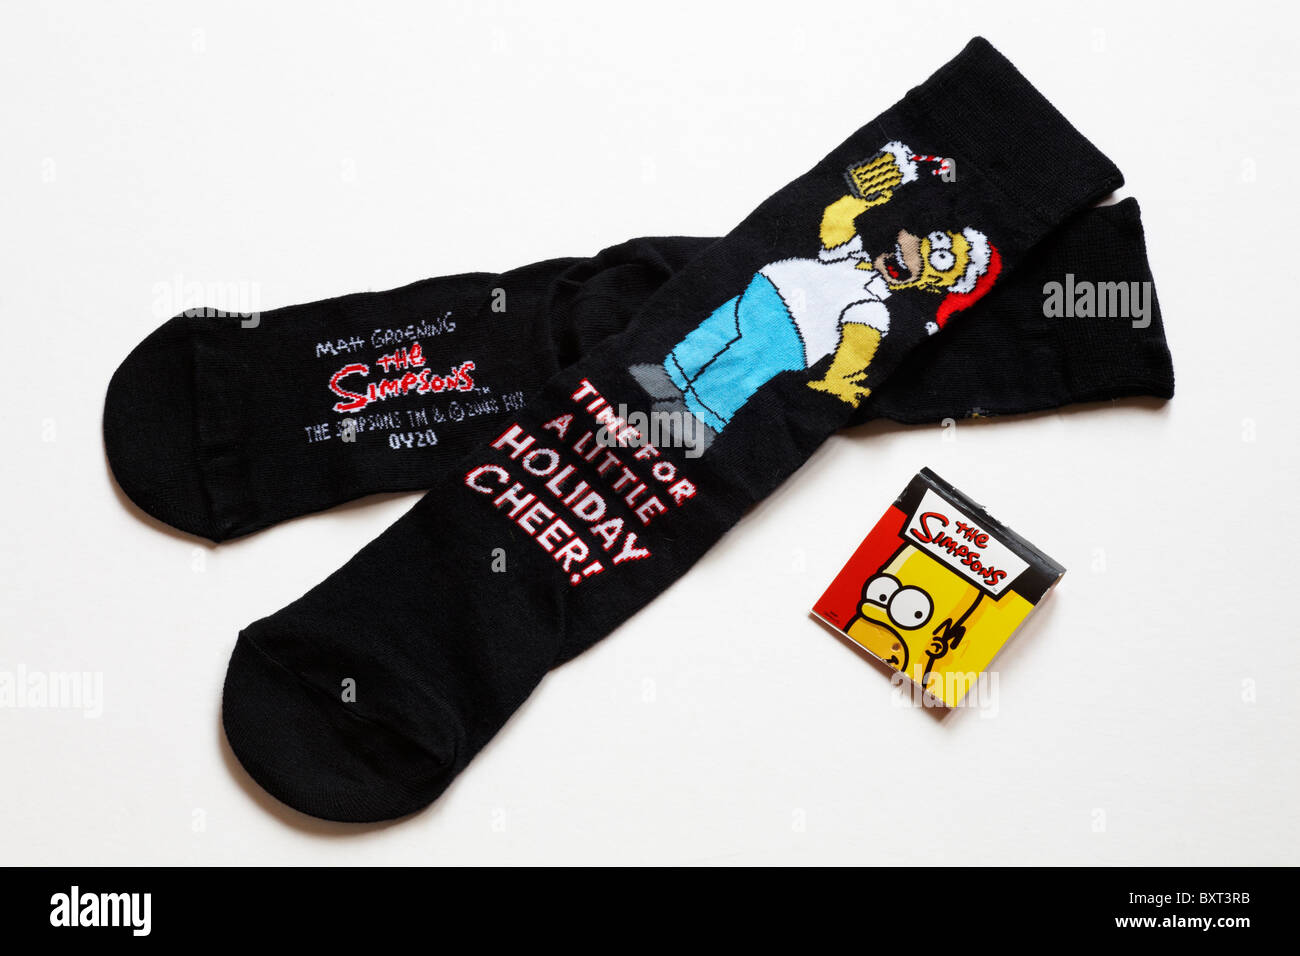 The Simpsons socks - Pair of novelty Homer Simpson socks time for a little holiday cheer isolated on white background Stock Photo